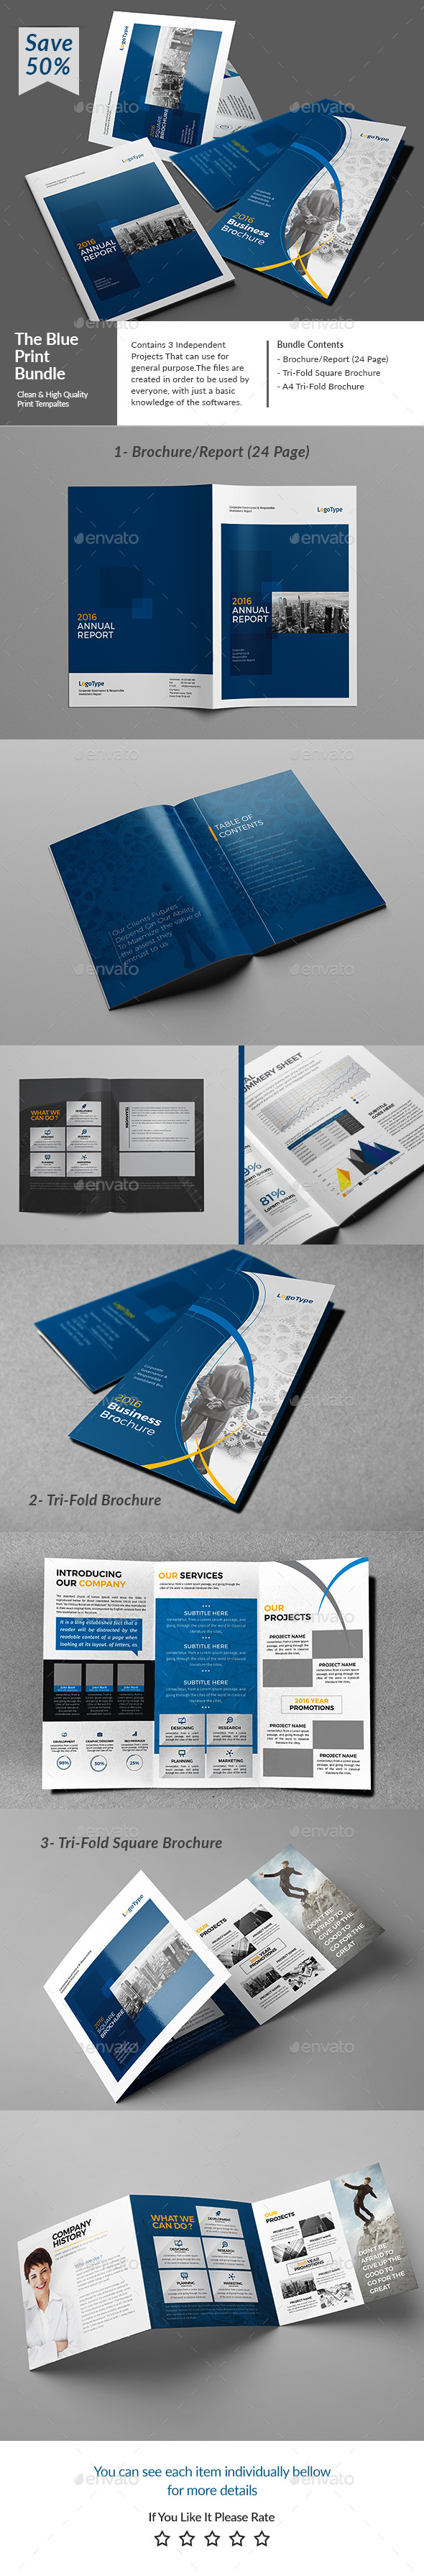 The Blue Bundle #elegant #identity #indesign #indesign templates ...